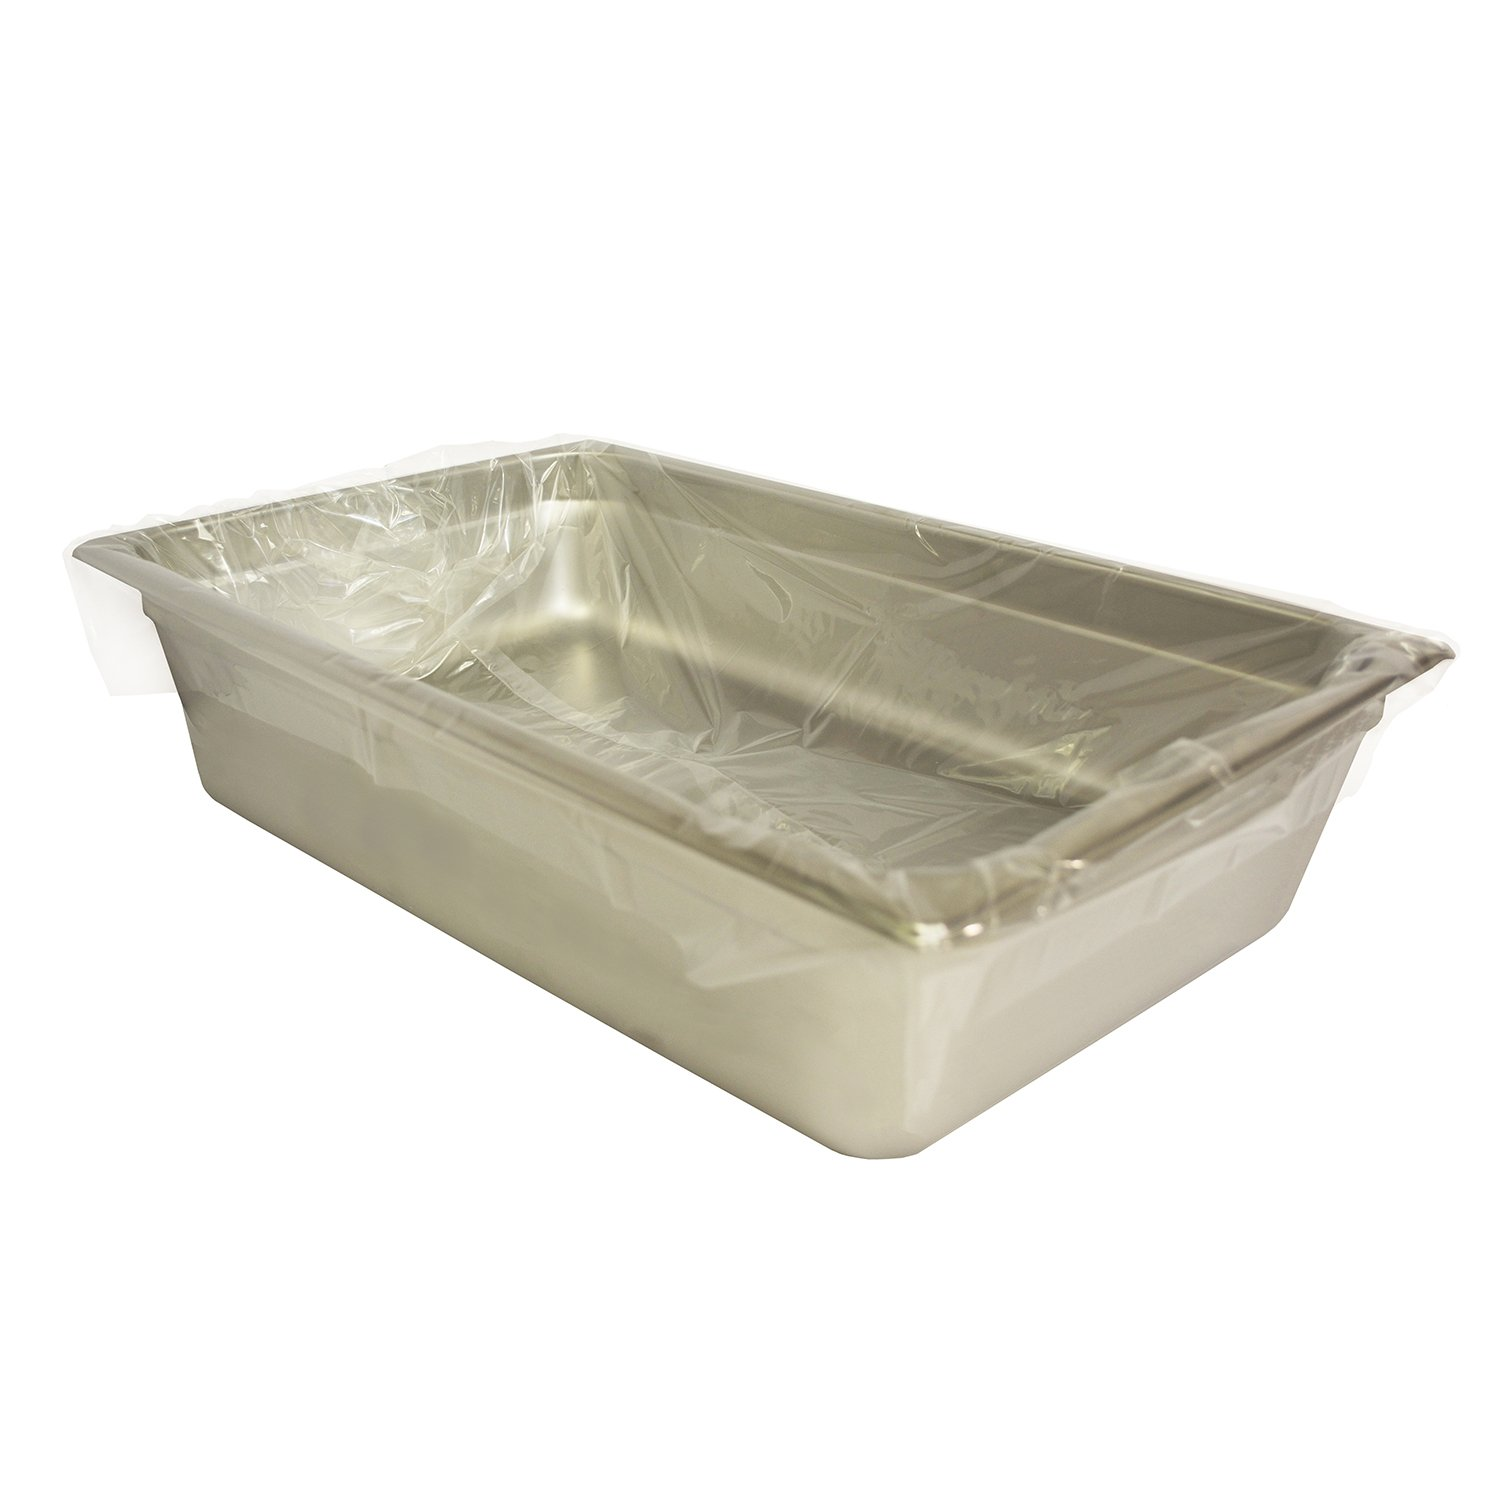 Royal Deep, Full Pan High Heat Oven Pan Liner, 34 Inch W x 18 Inch L, Case of 50